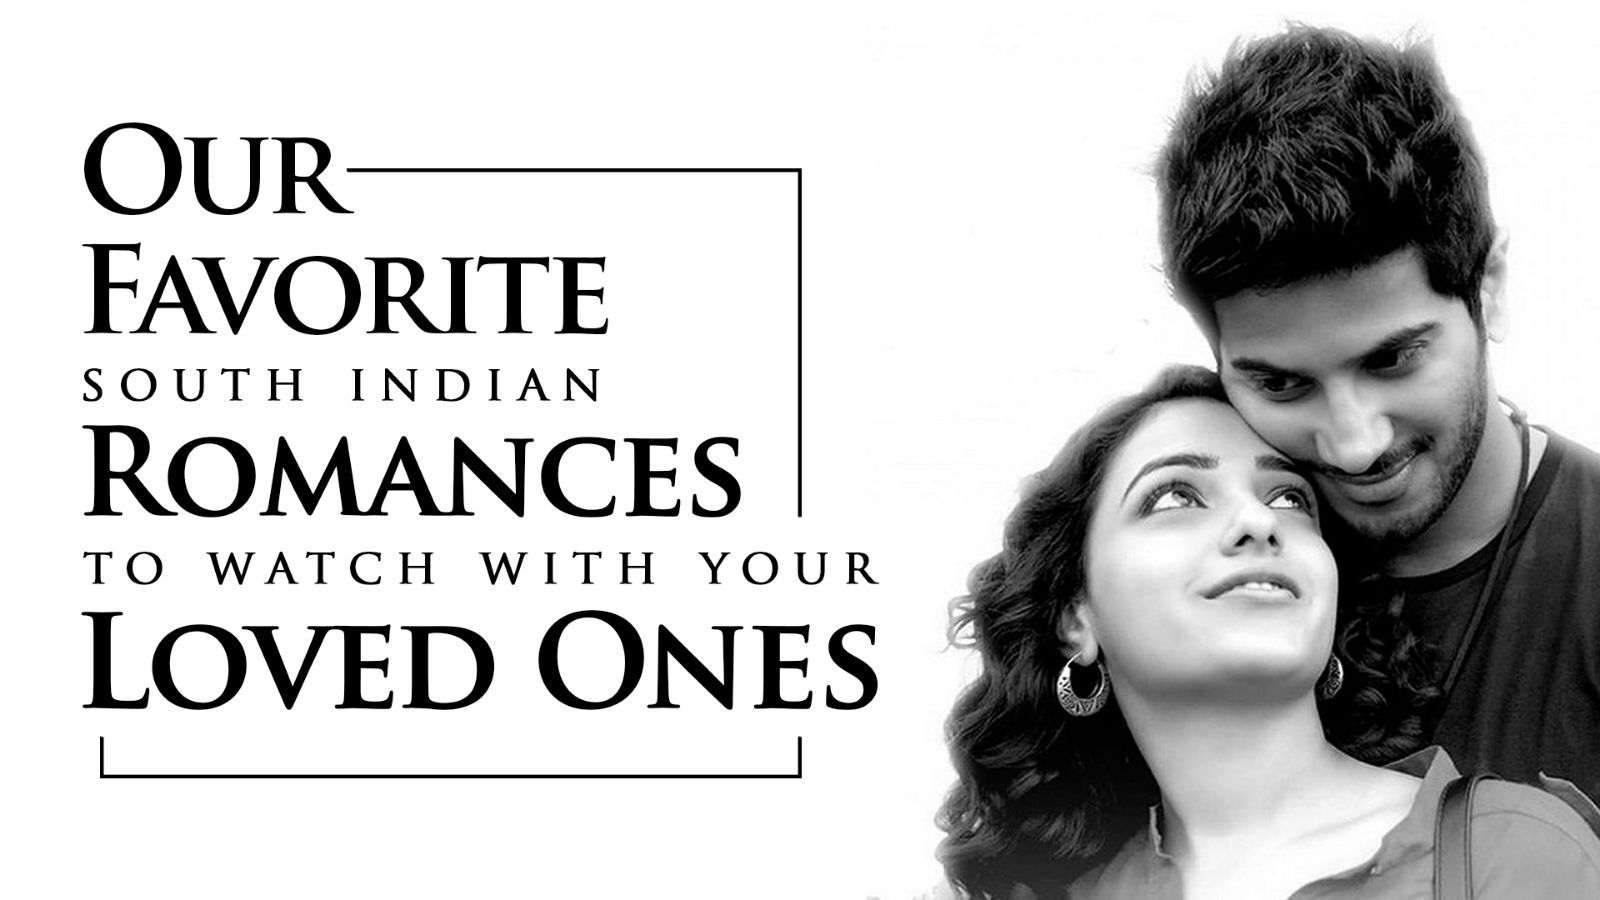 Our Favorite South Indian Romances to watch with your Loved Ones